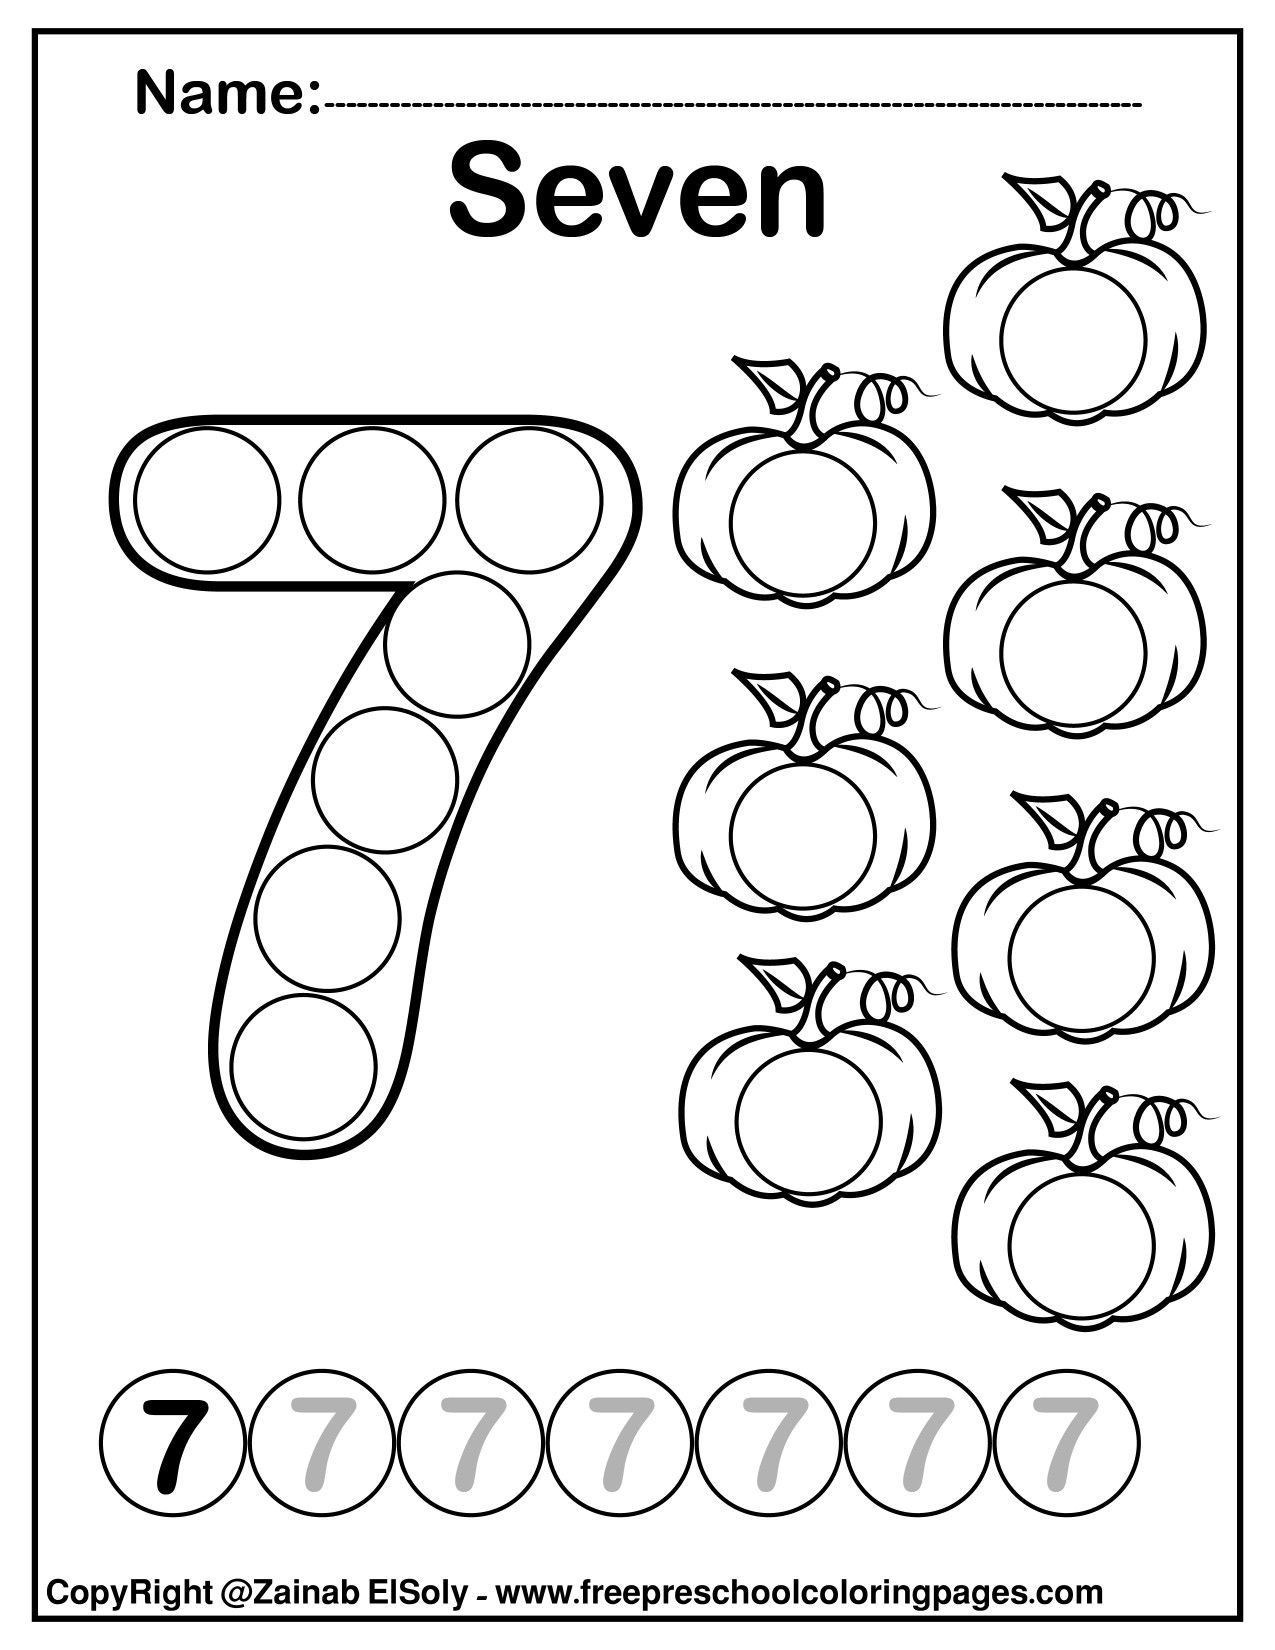 Number 7 Seven Do A Dot Marker Activity Activity Pumpkins